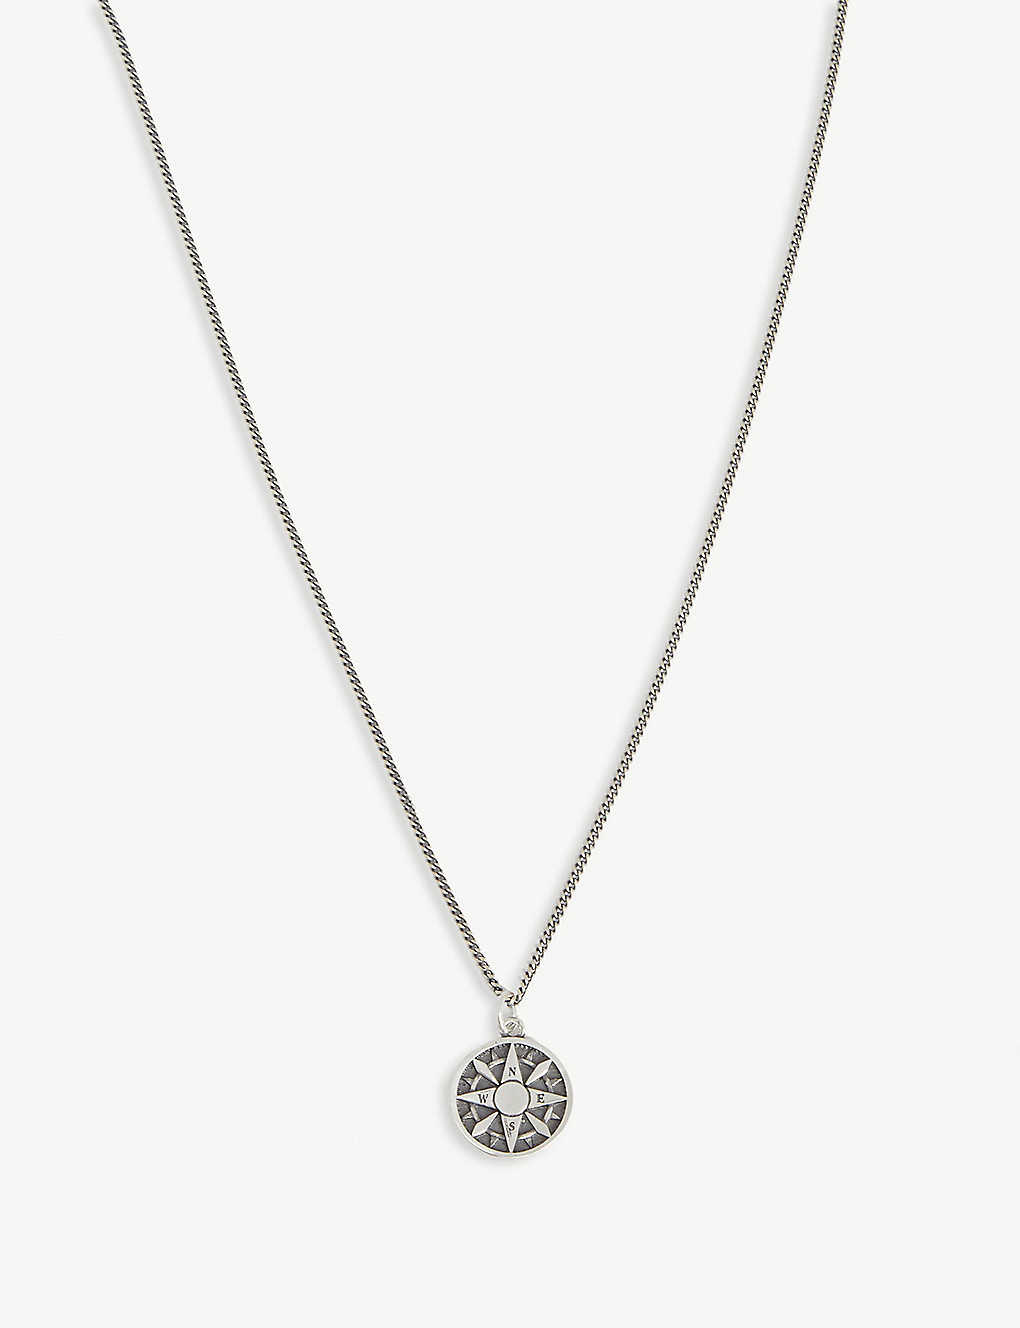 SERGE DENIMES: Compass silver necklace